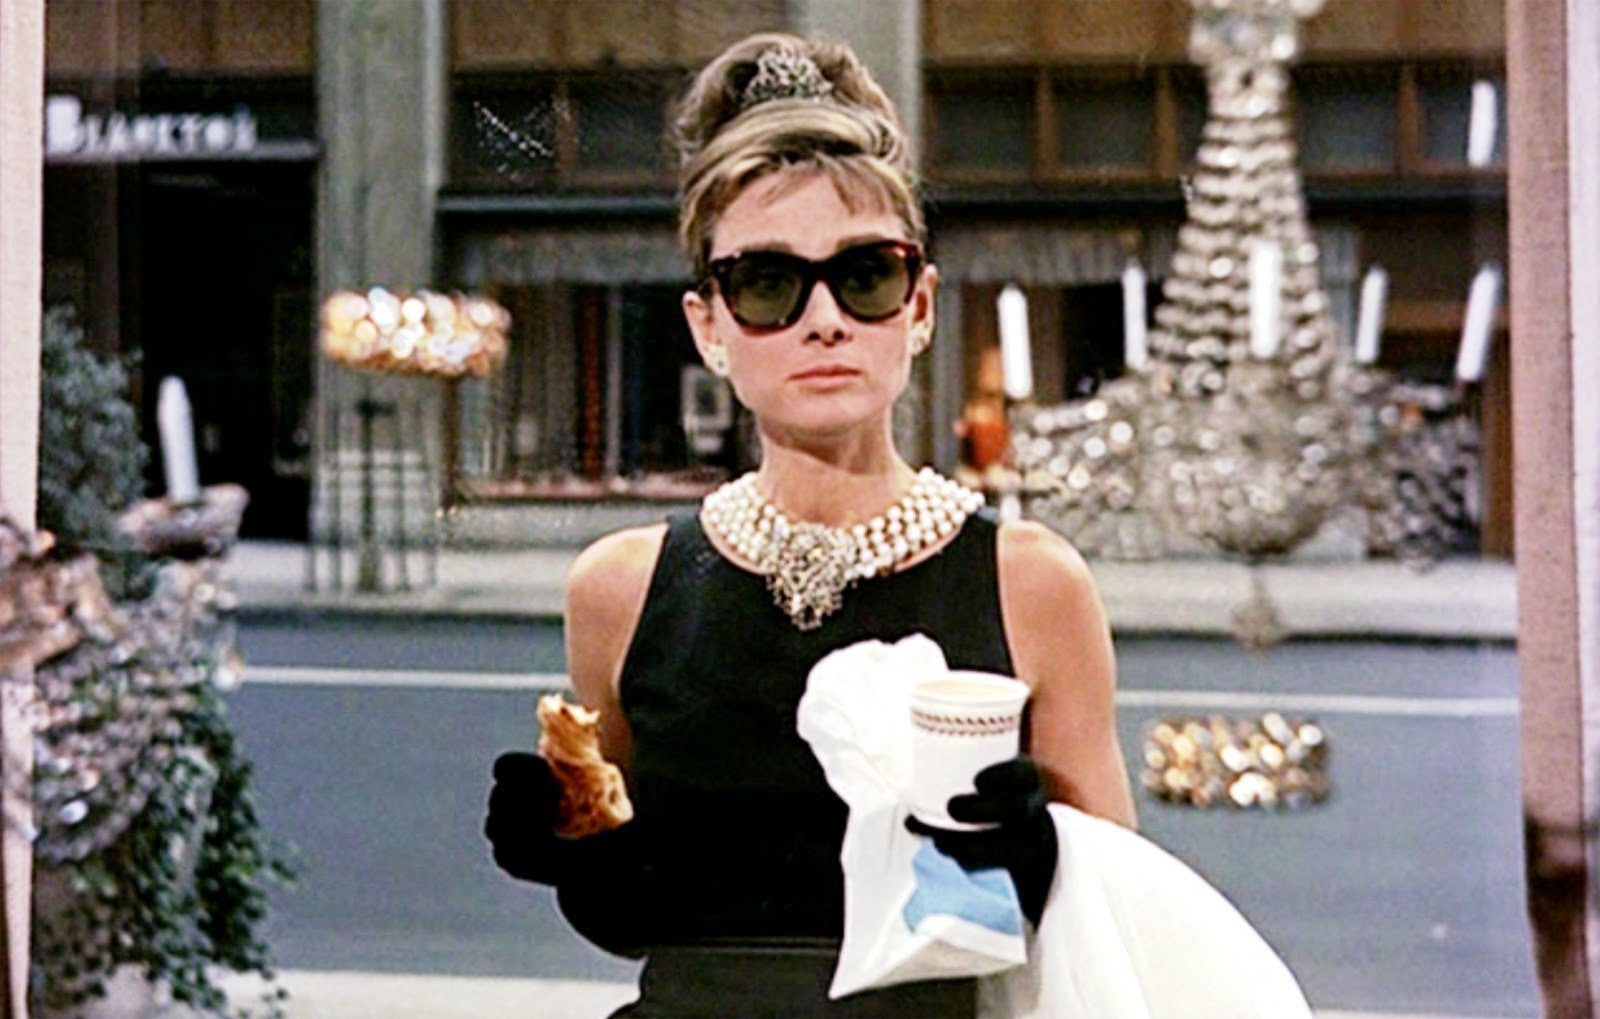 Now you can actually have 'Breakfast at Tiffany's'